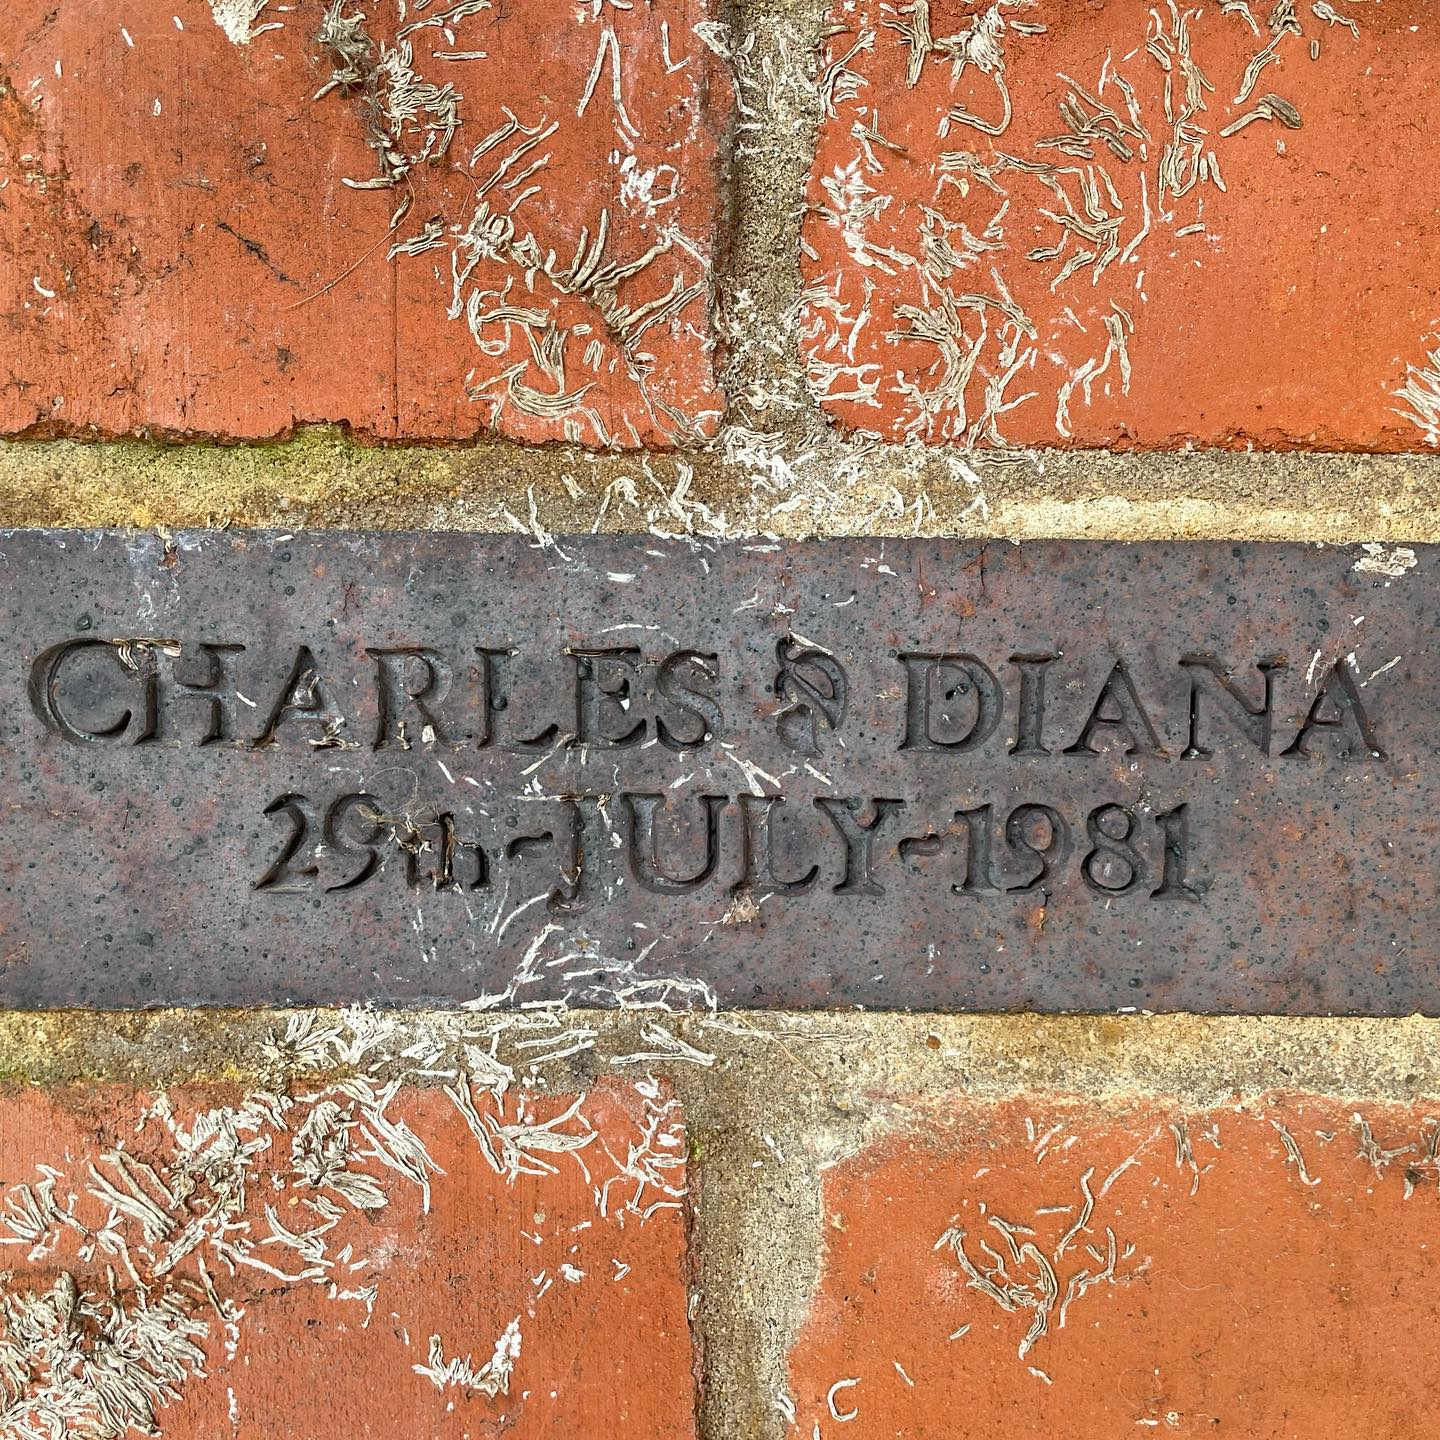 Charles and Diana wedding day commemorative brick spotted on today's new project site visit. See something new everyday on this job!